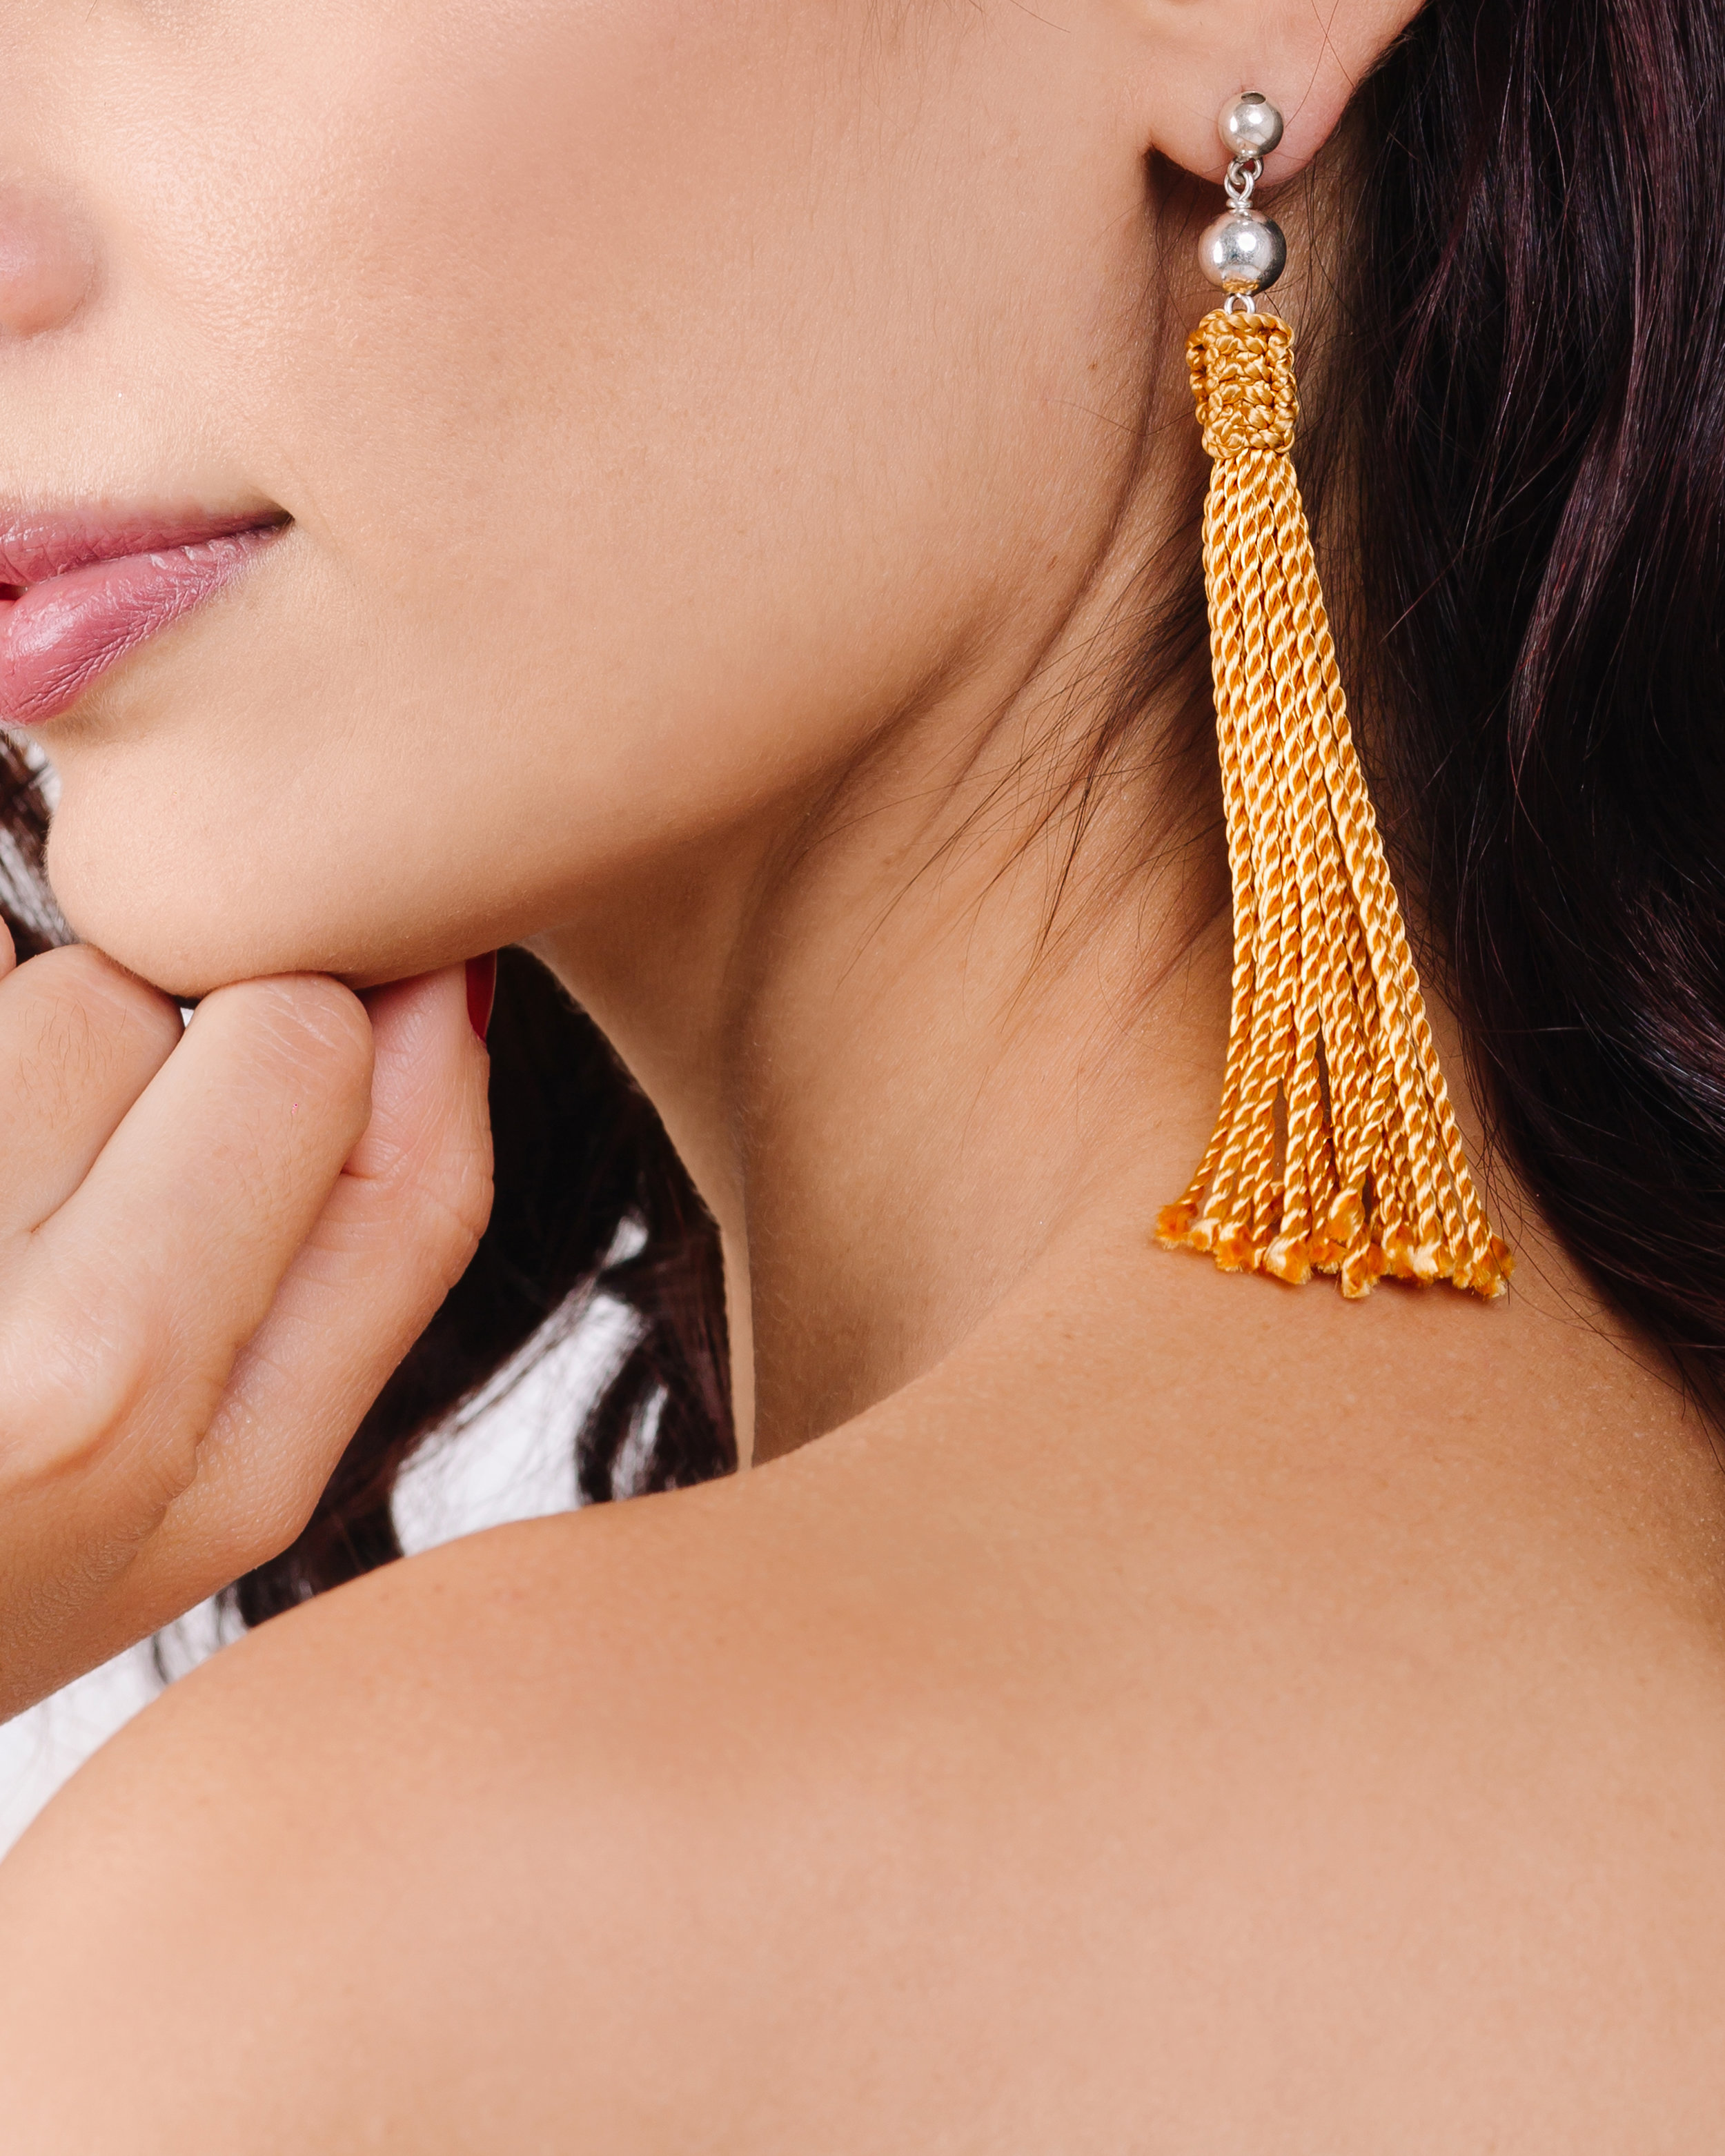 Al'Balbal Earrings